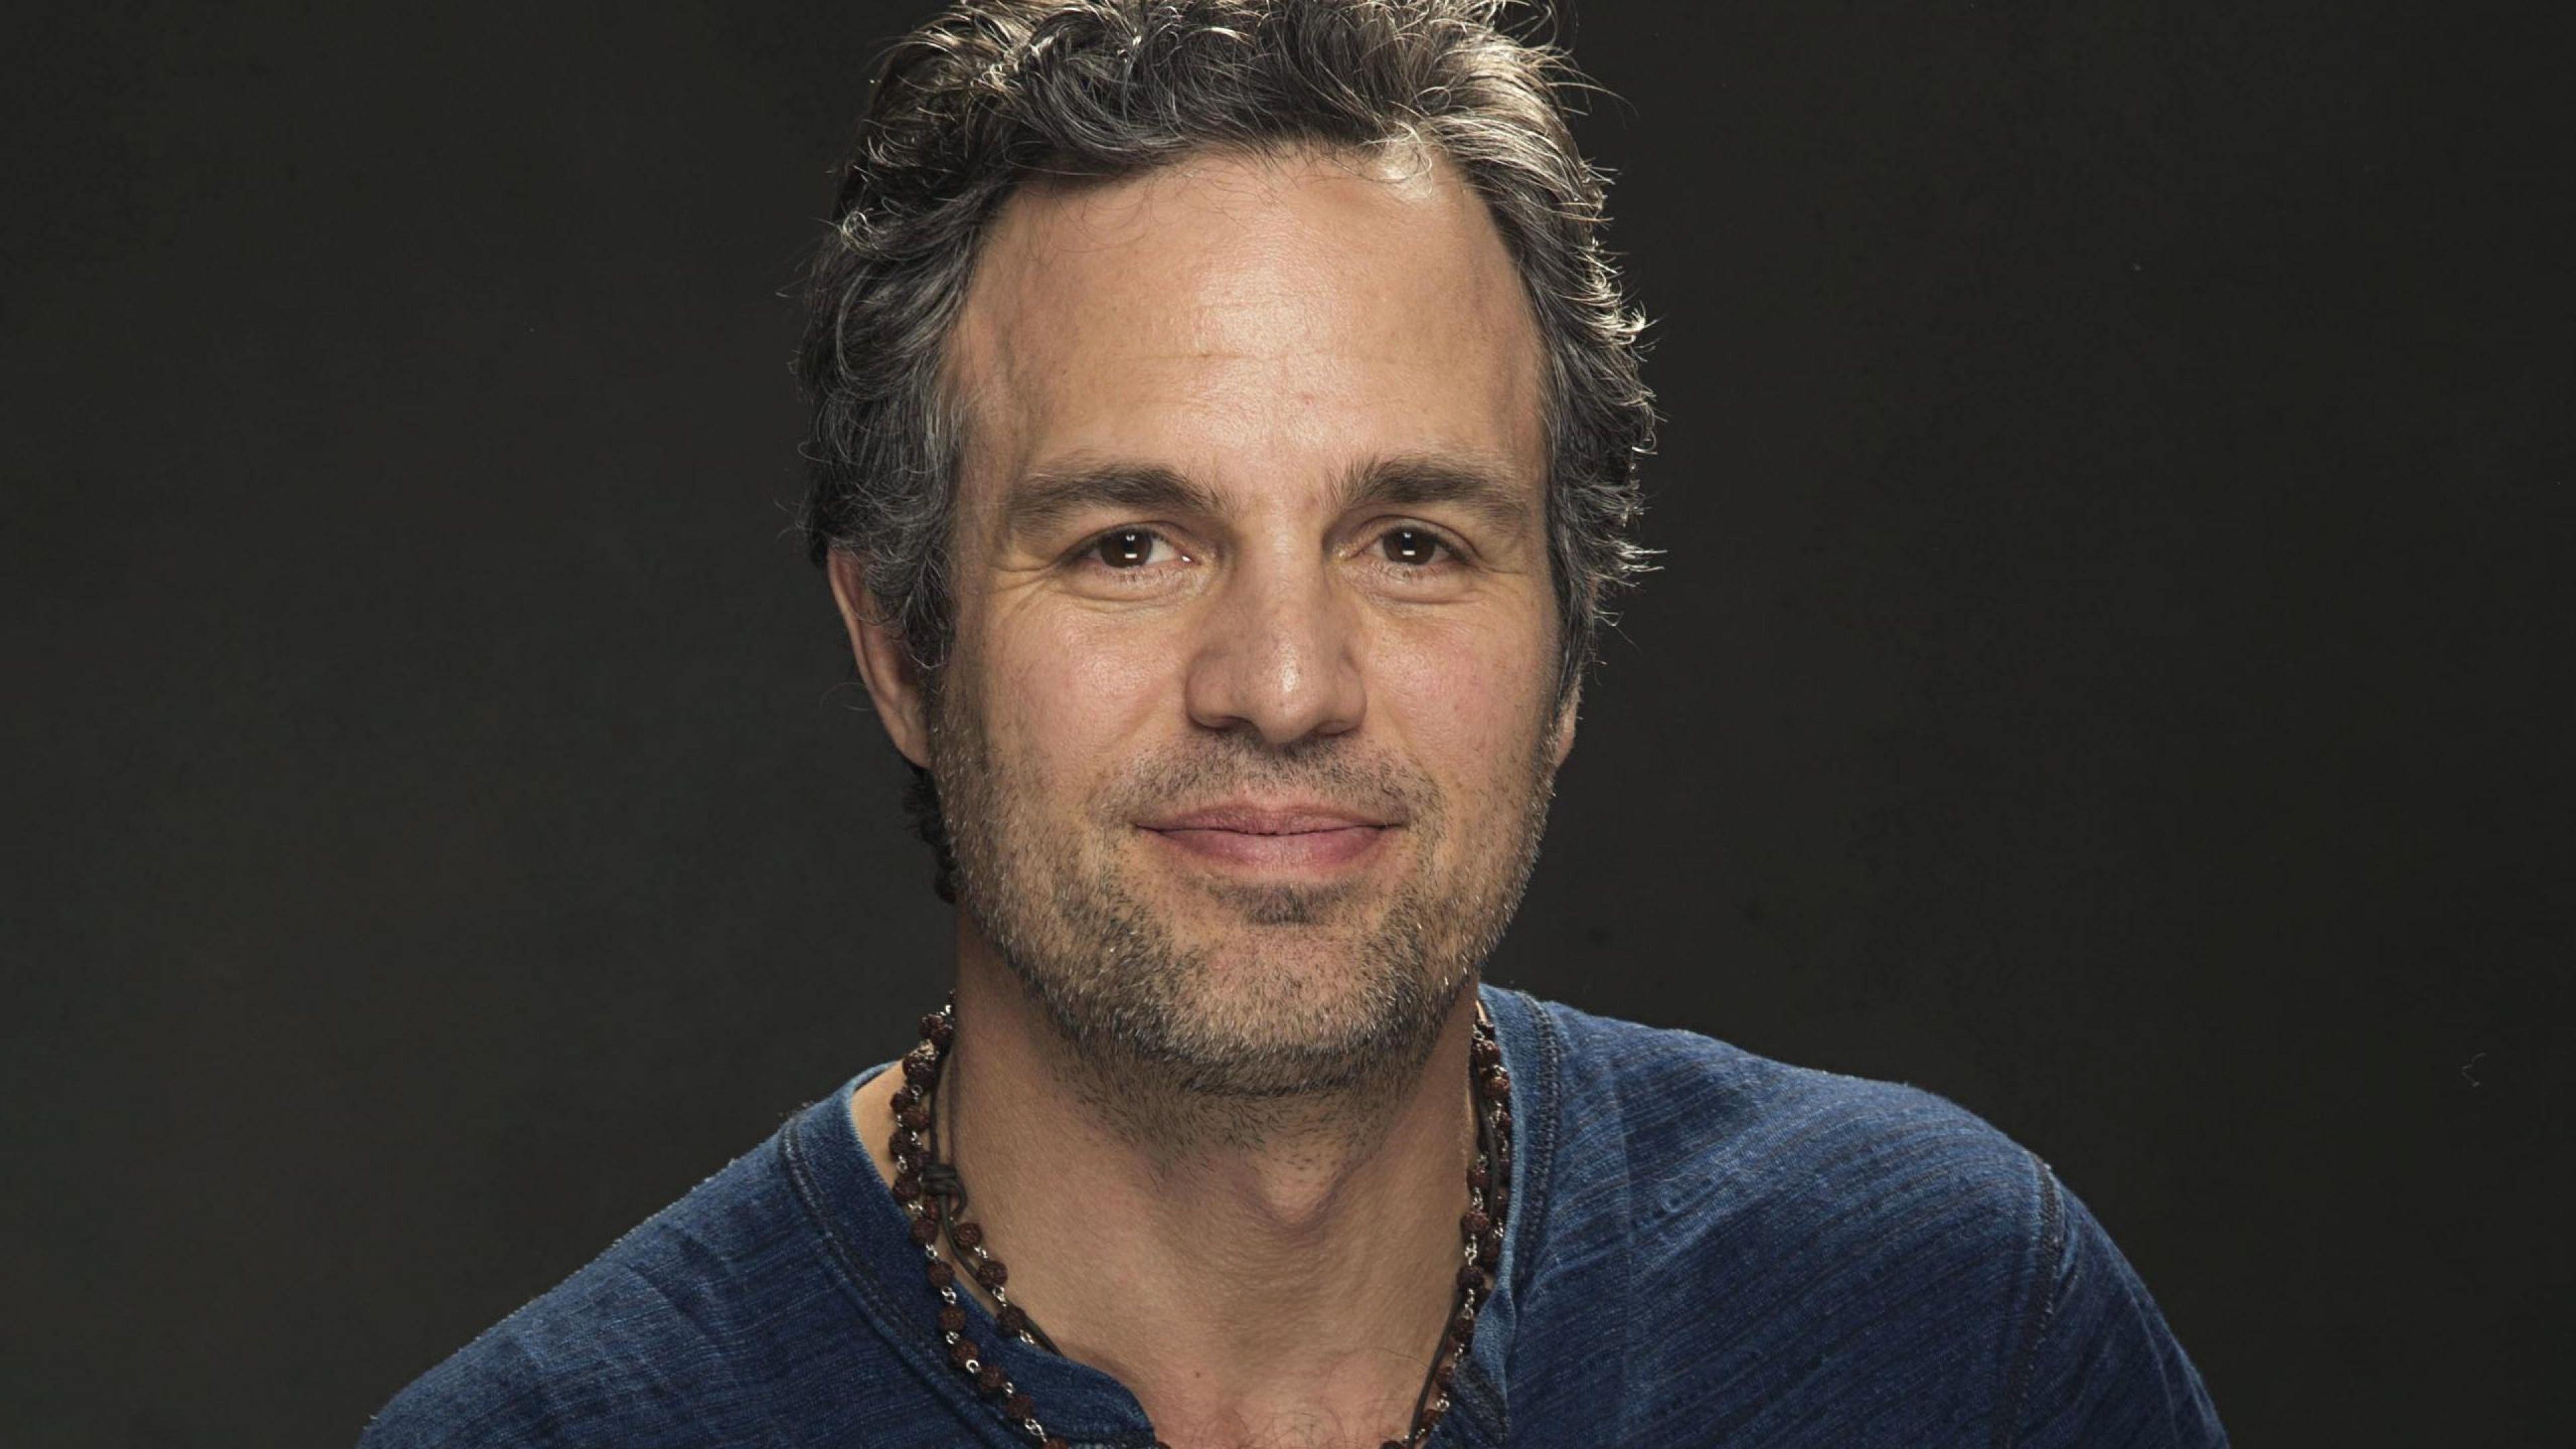 Download Wallpapers 3840x2160 Mark ruffalo, Actor, Look, Bristle 4K